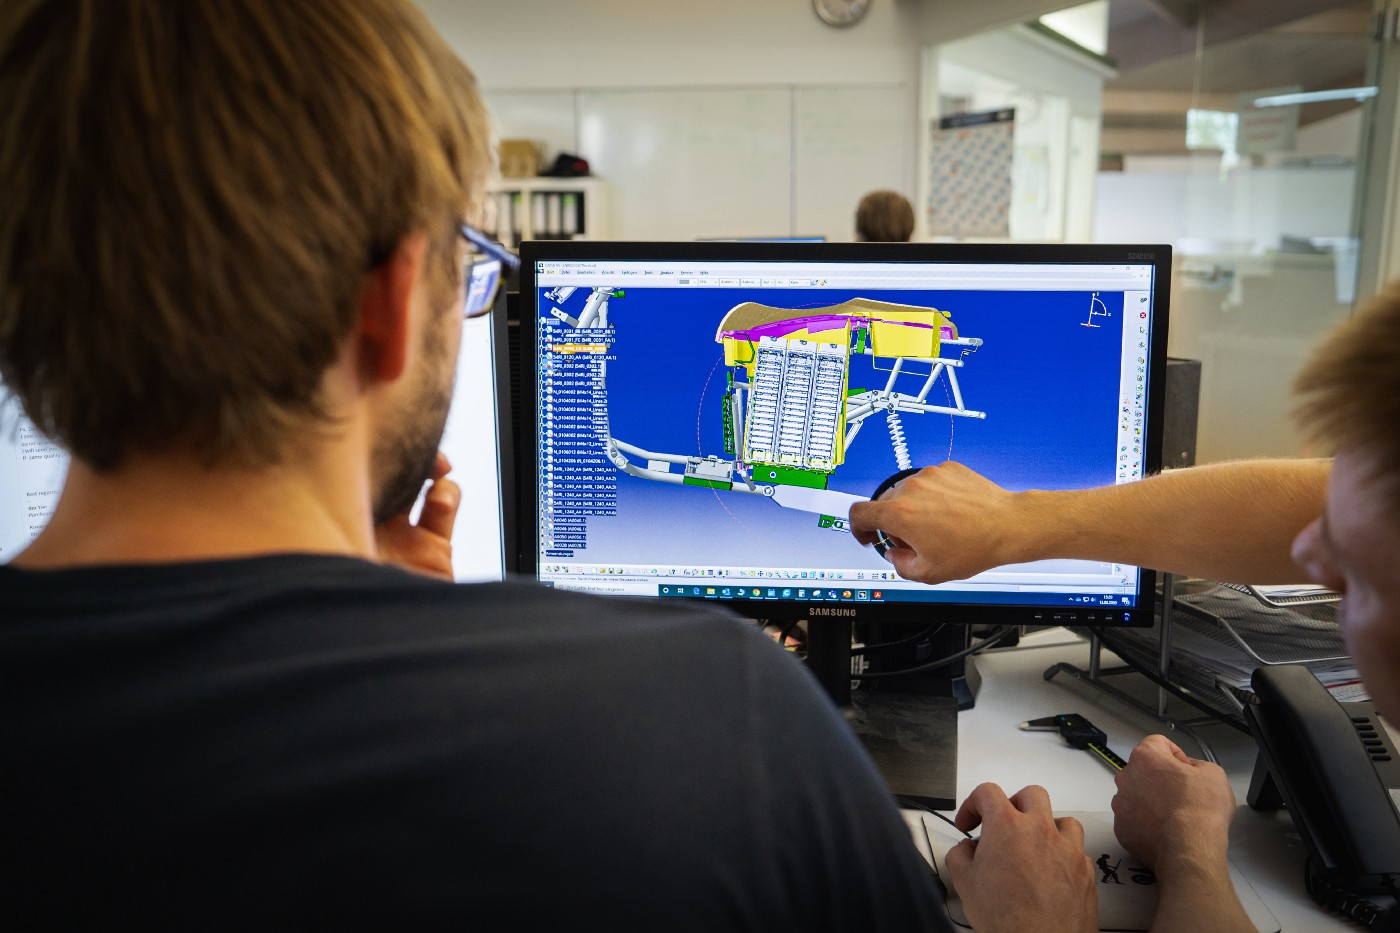 Engineers at an electric car company design the back hood on a computer.